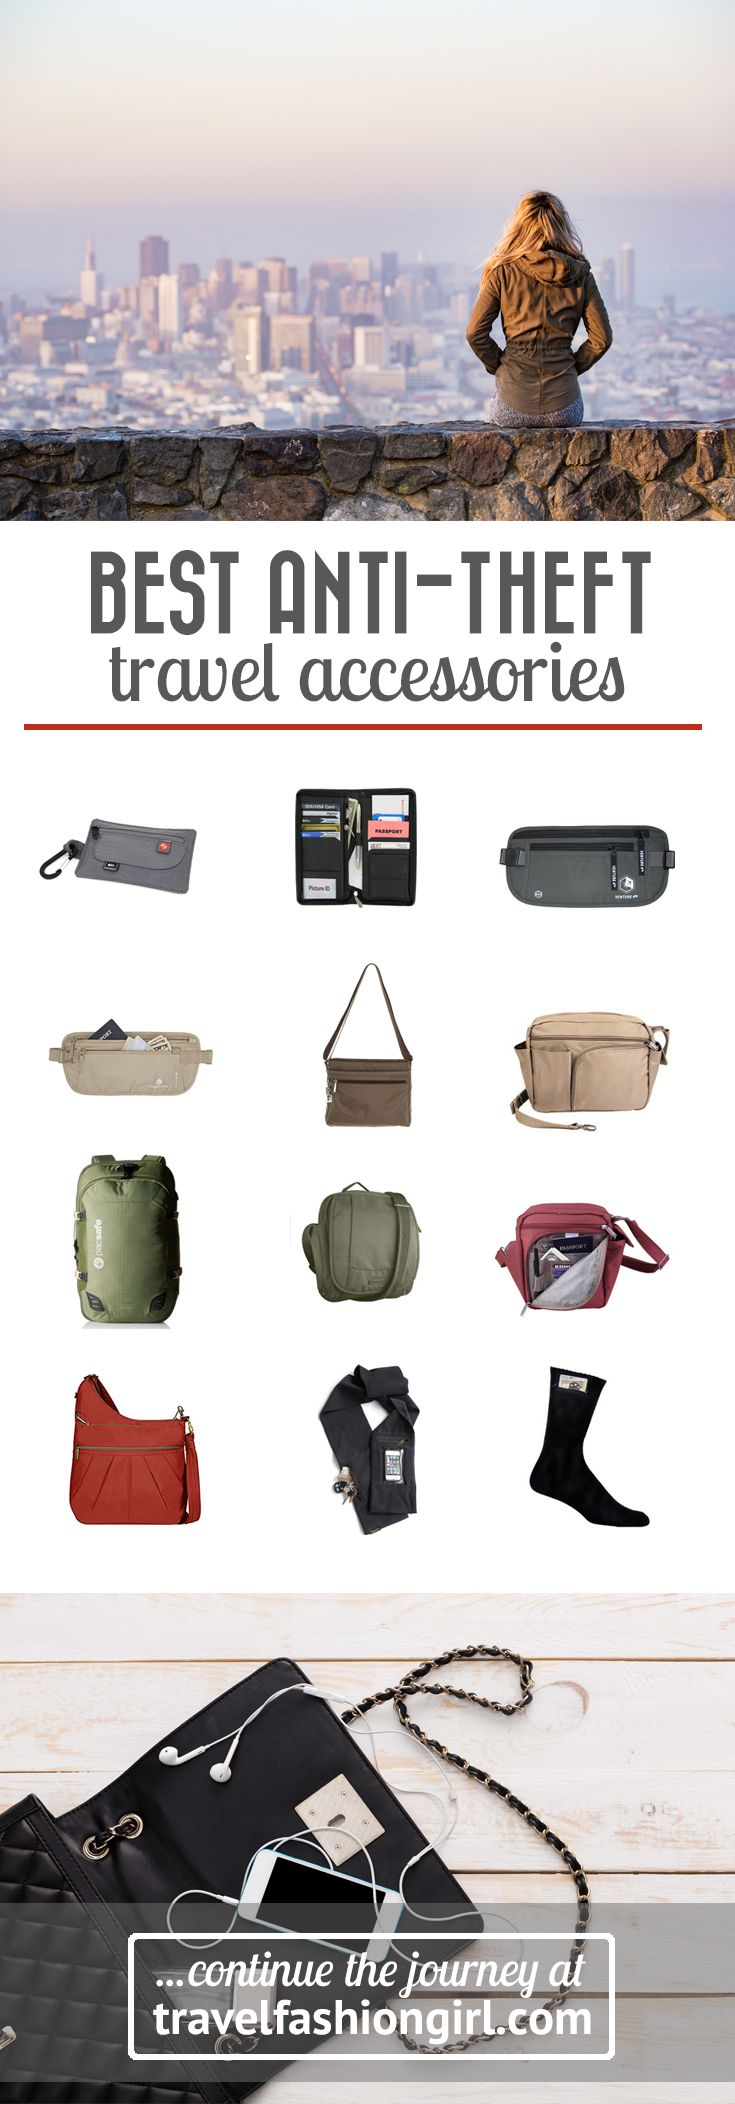 Safety is a big concern for travelers, no matter the destination or the length of the journey. @travlfashngirl has the best anti-theft accessories and bags for your travels. | travelfashiongirl.com